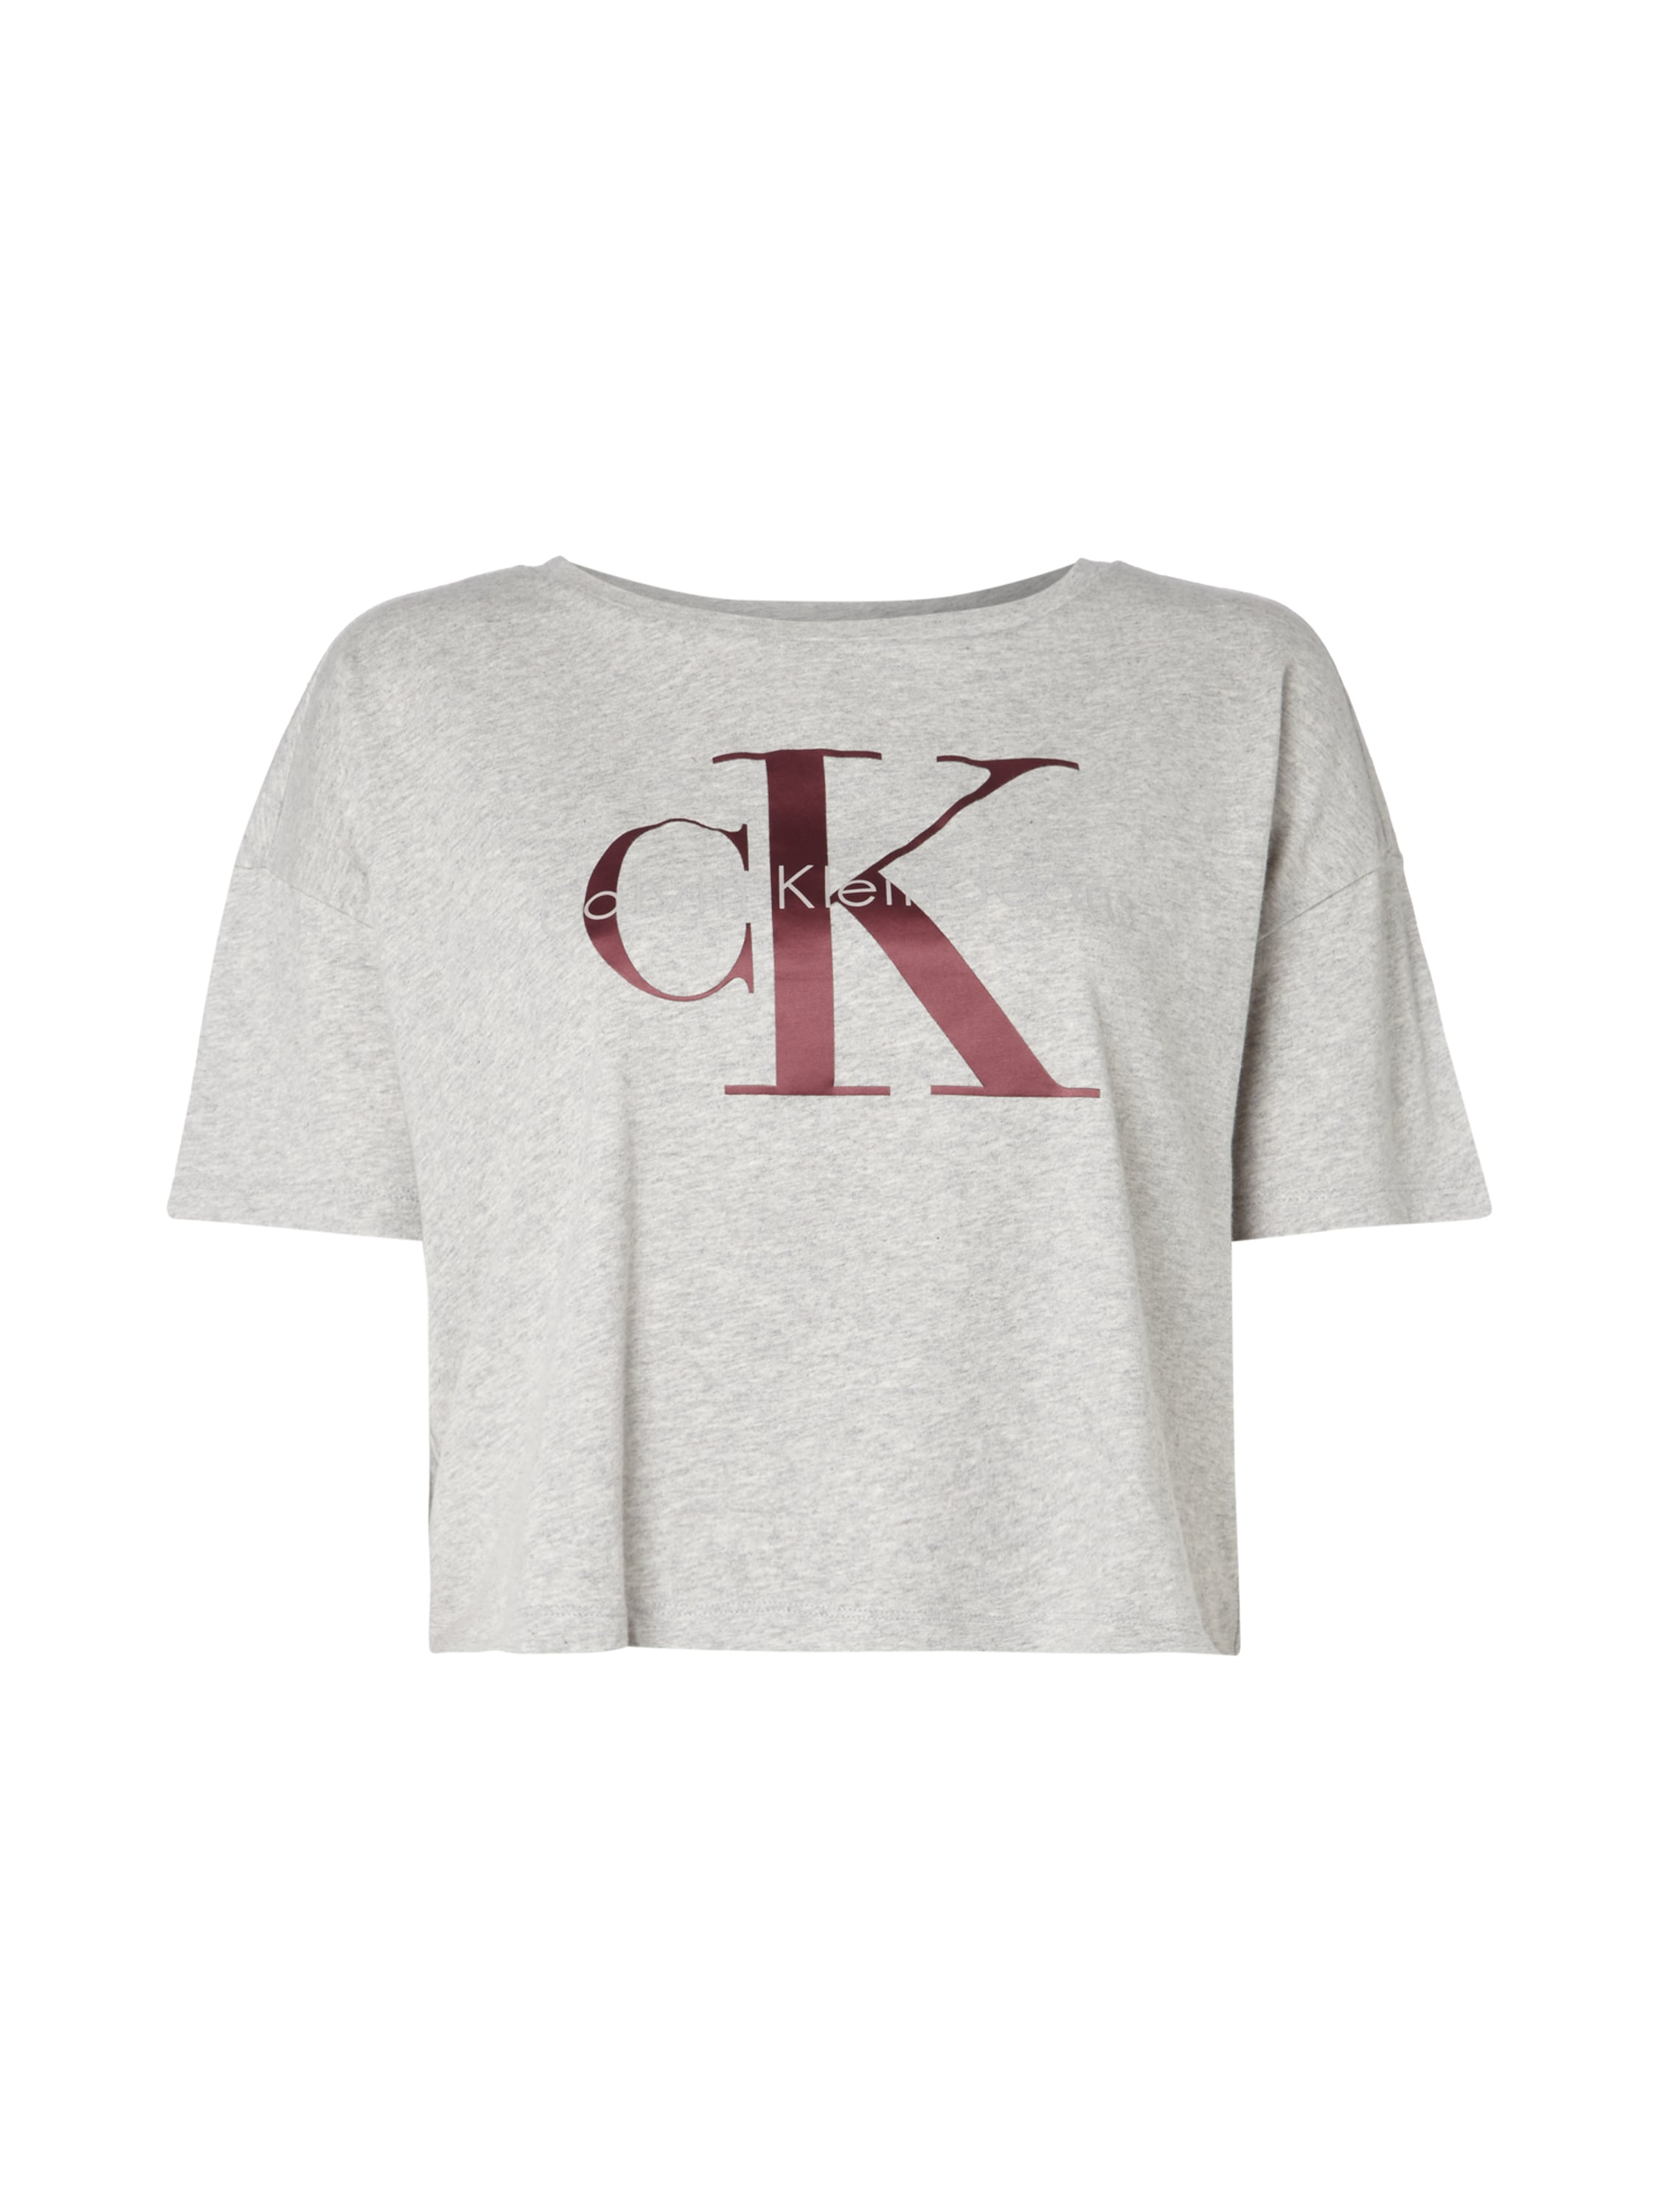 calvin klein jeans crop shirt mit gummiertem logo print in. Black Bedroom Furniture Sets. Home Design Ideas